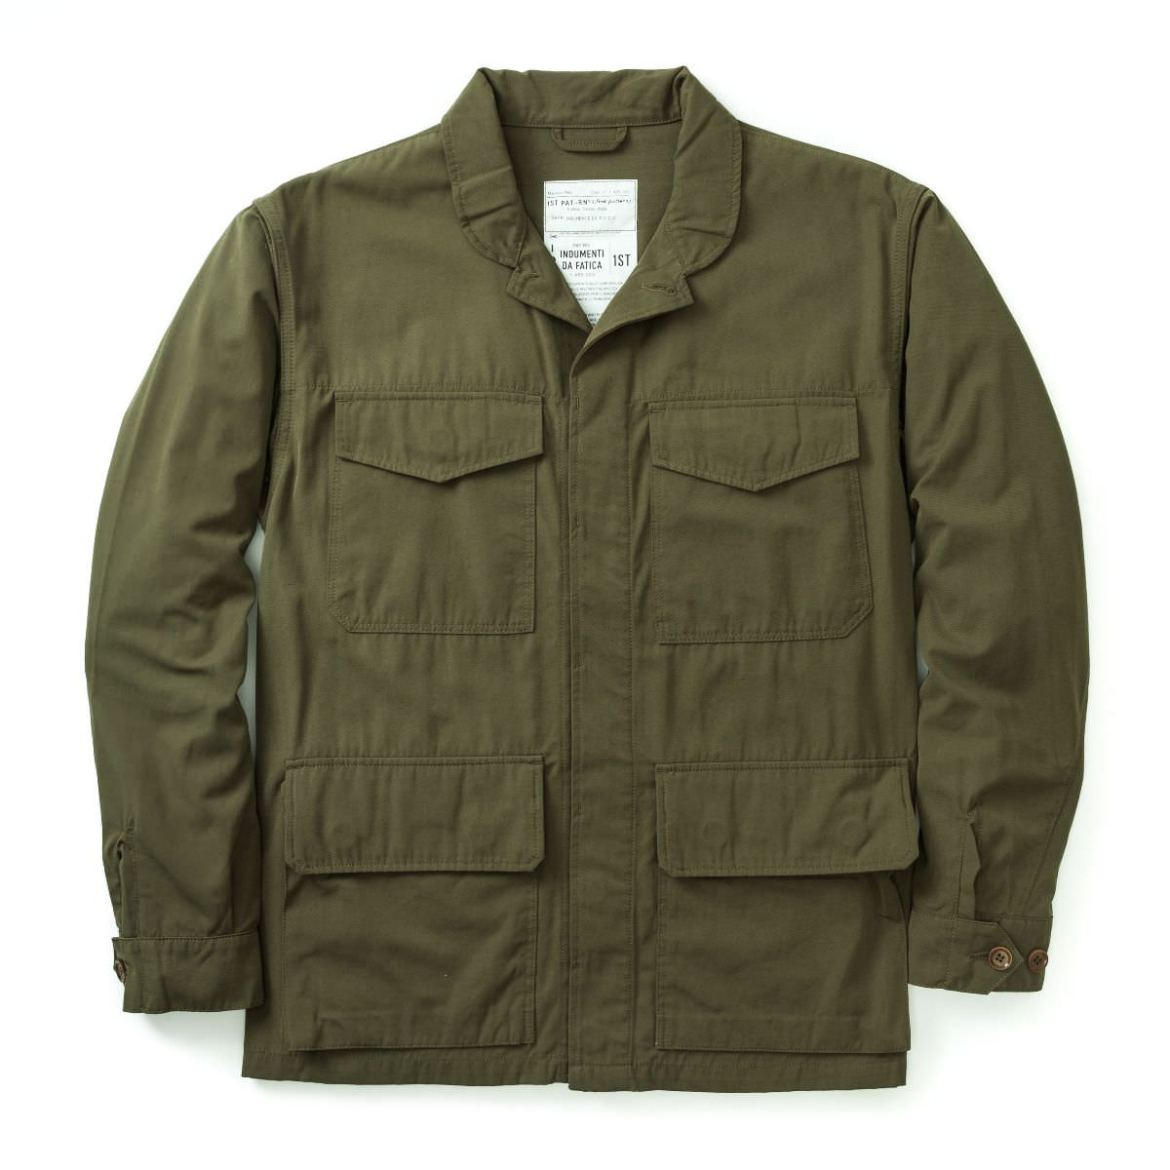 1ST PAT-RN campo field jacket